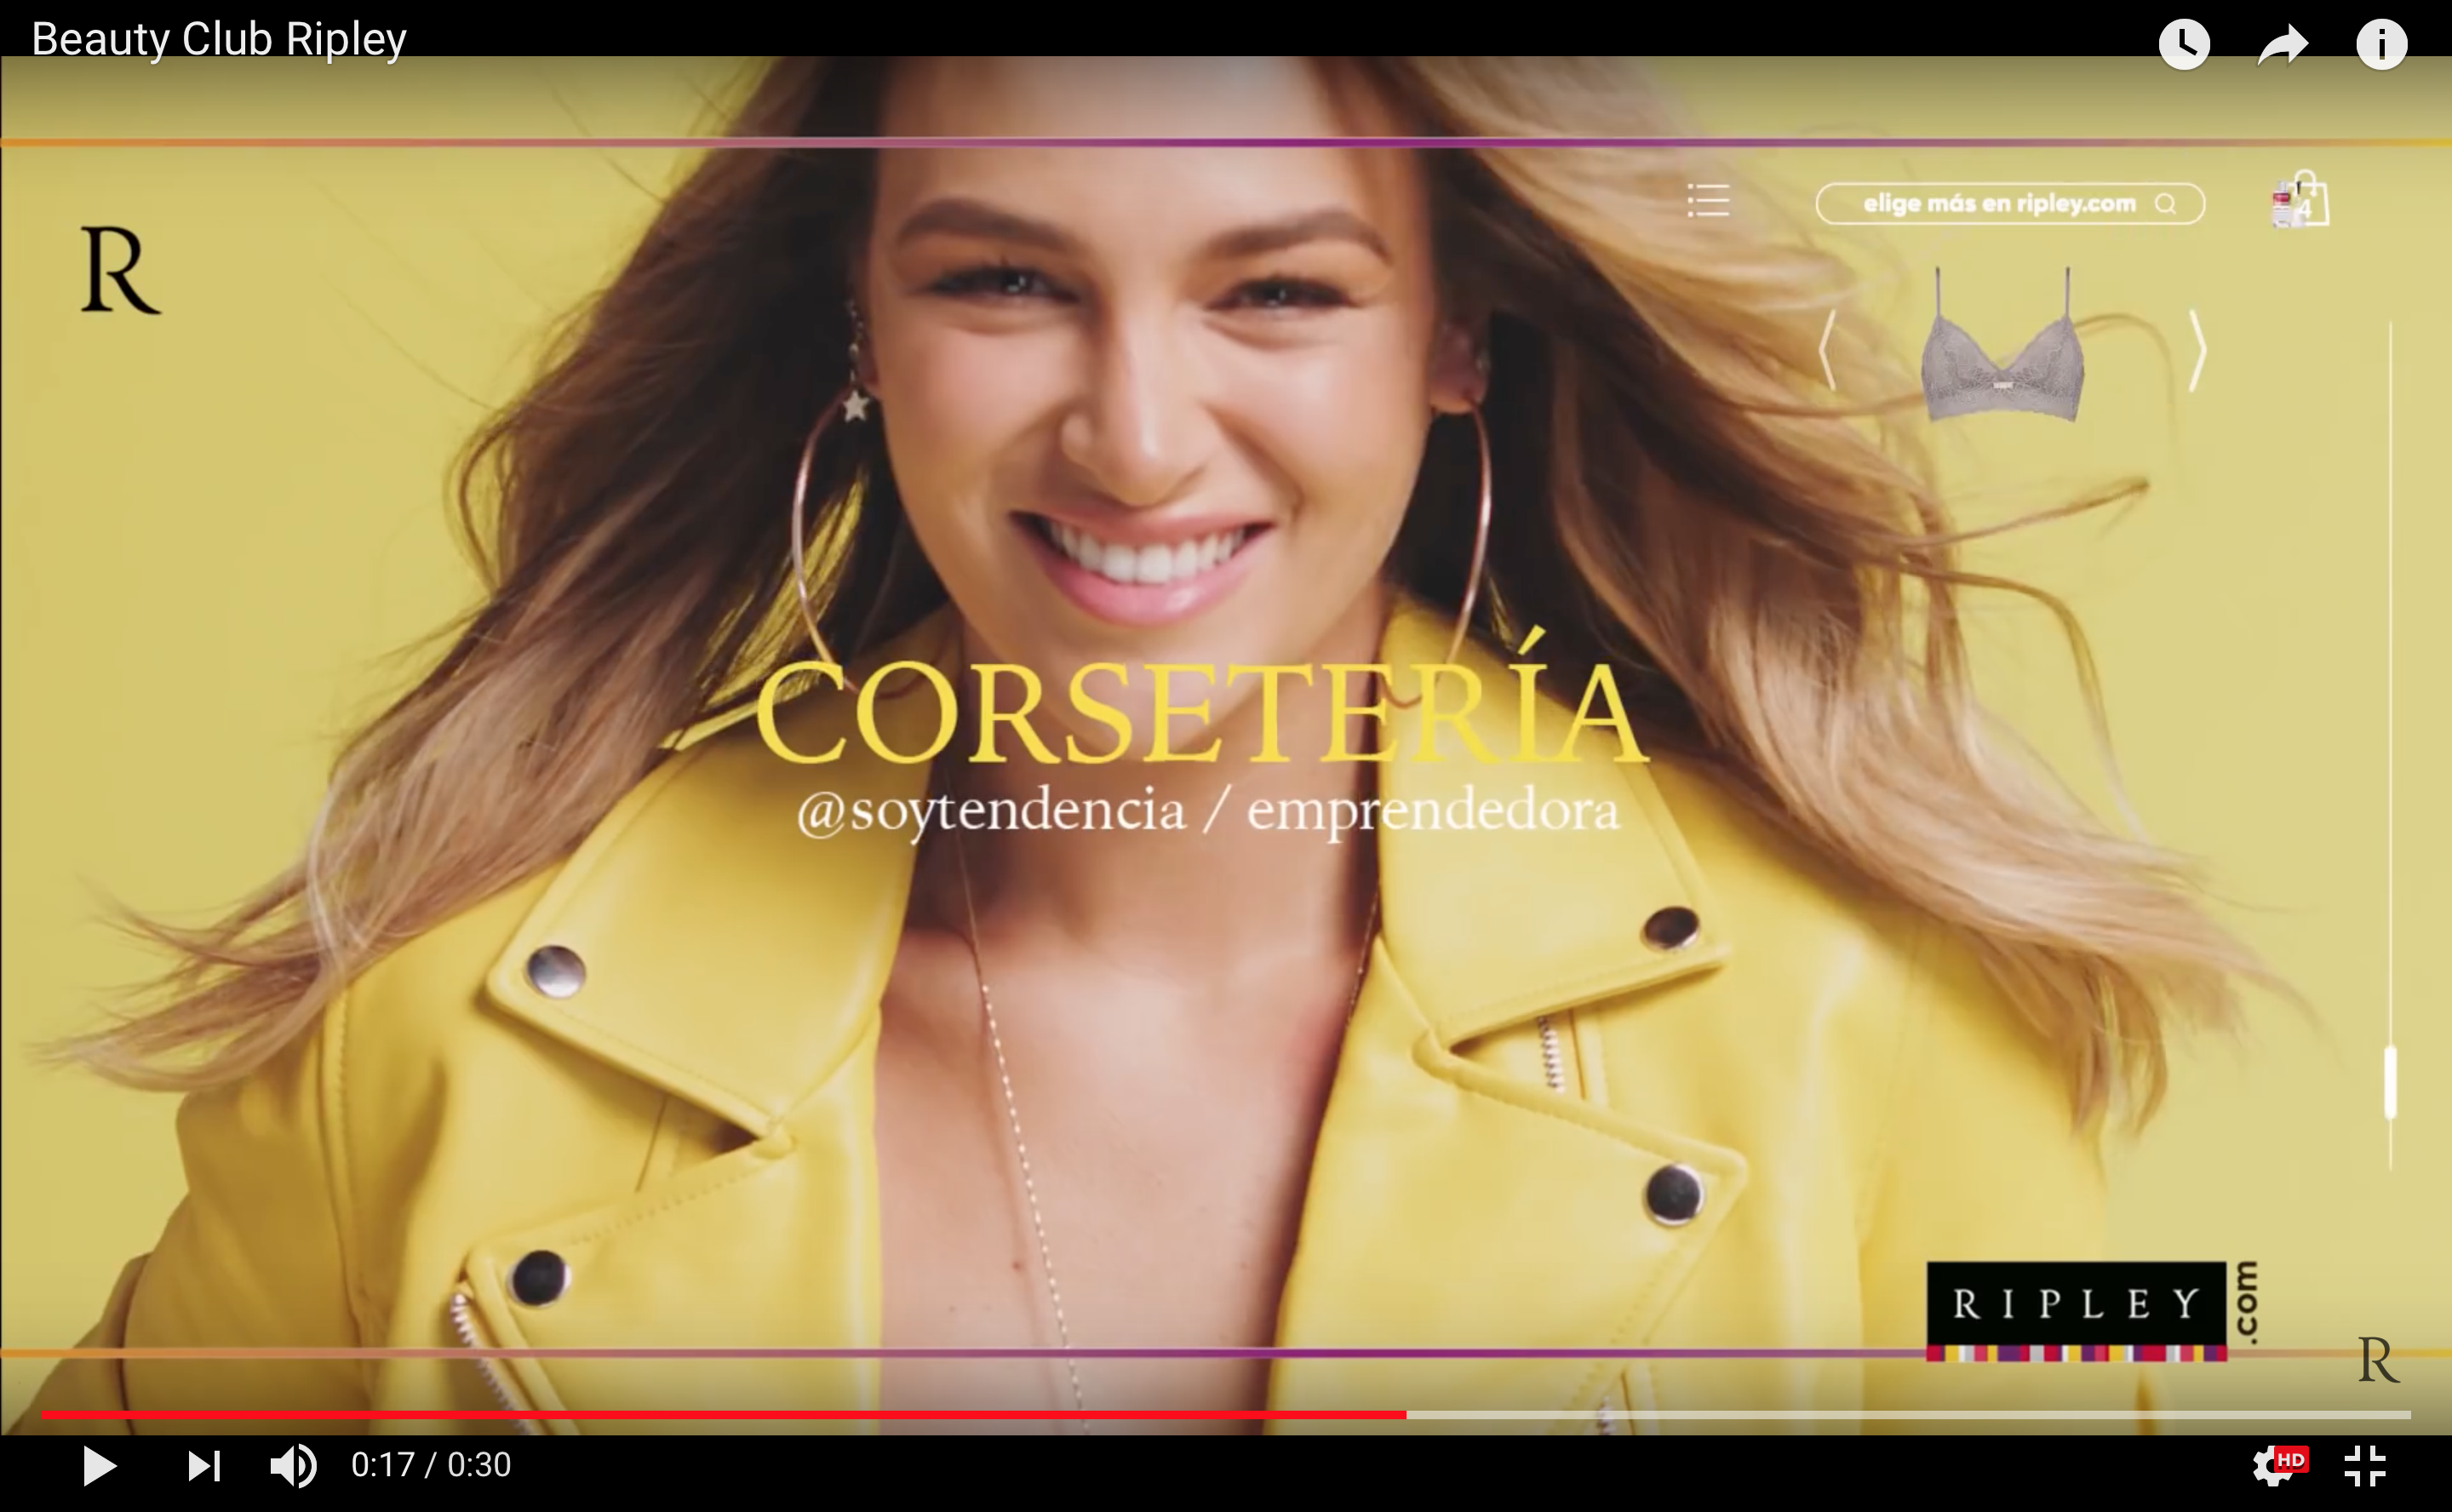 VIDEO – COMERCIAL Ripley Chile #BeautyClub